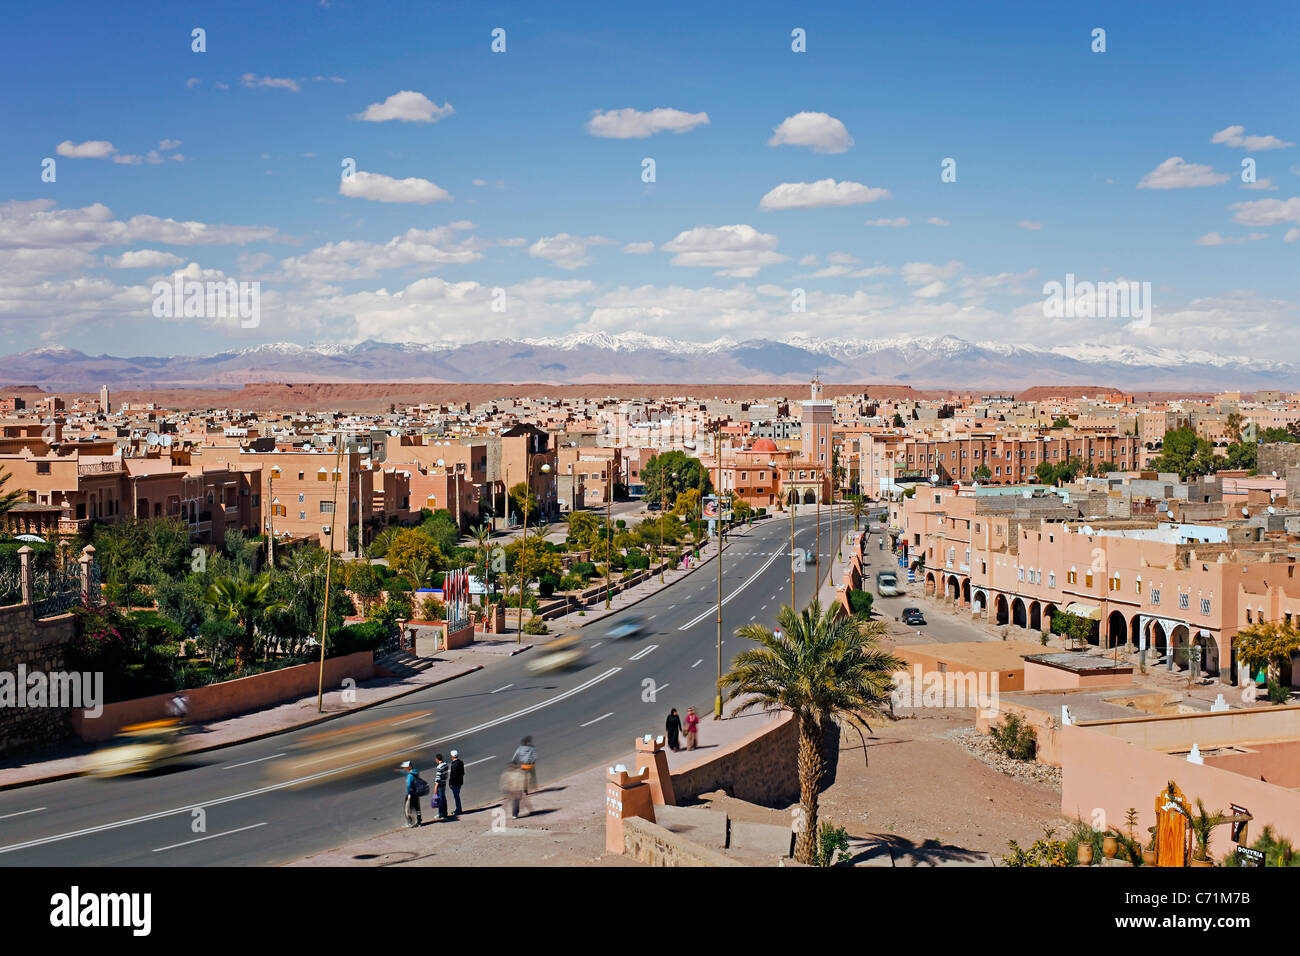 atlas mountains and the town of ouarzazate morocco northwest africa C71M7B